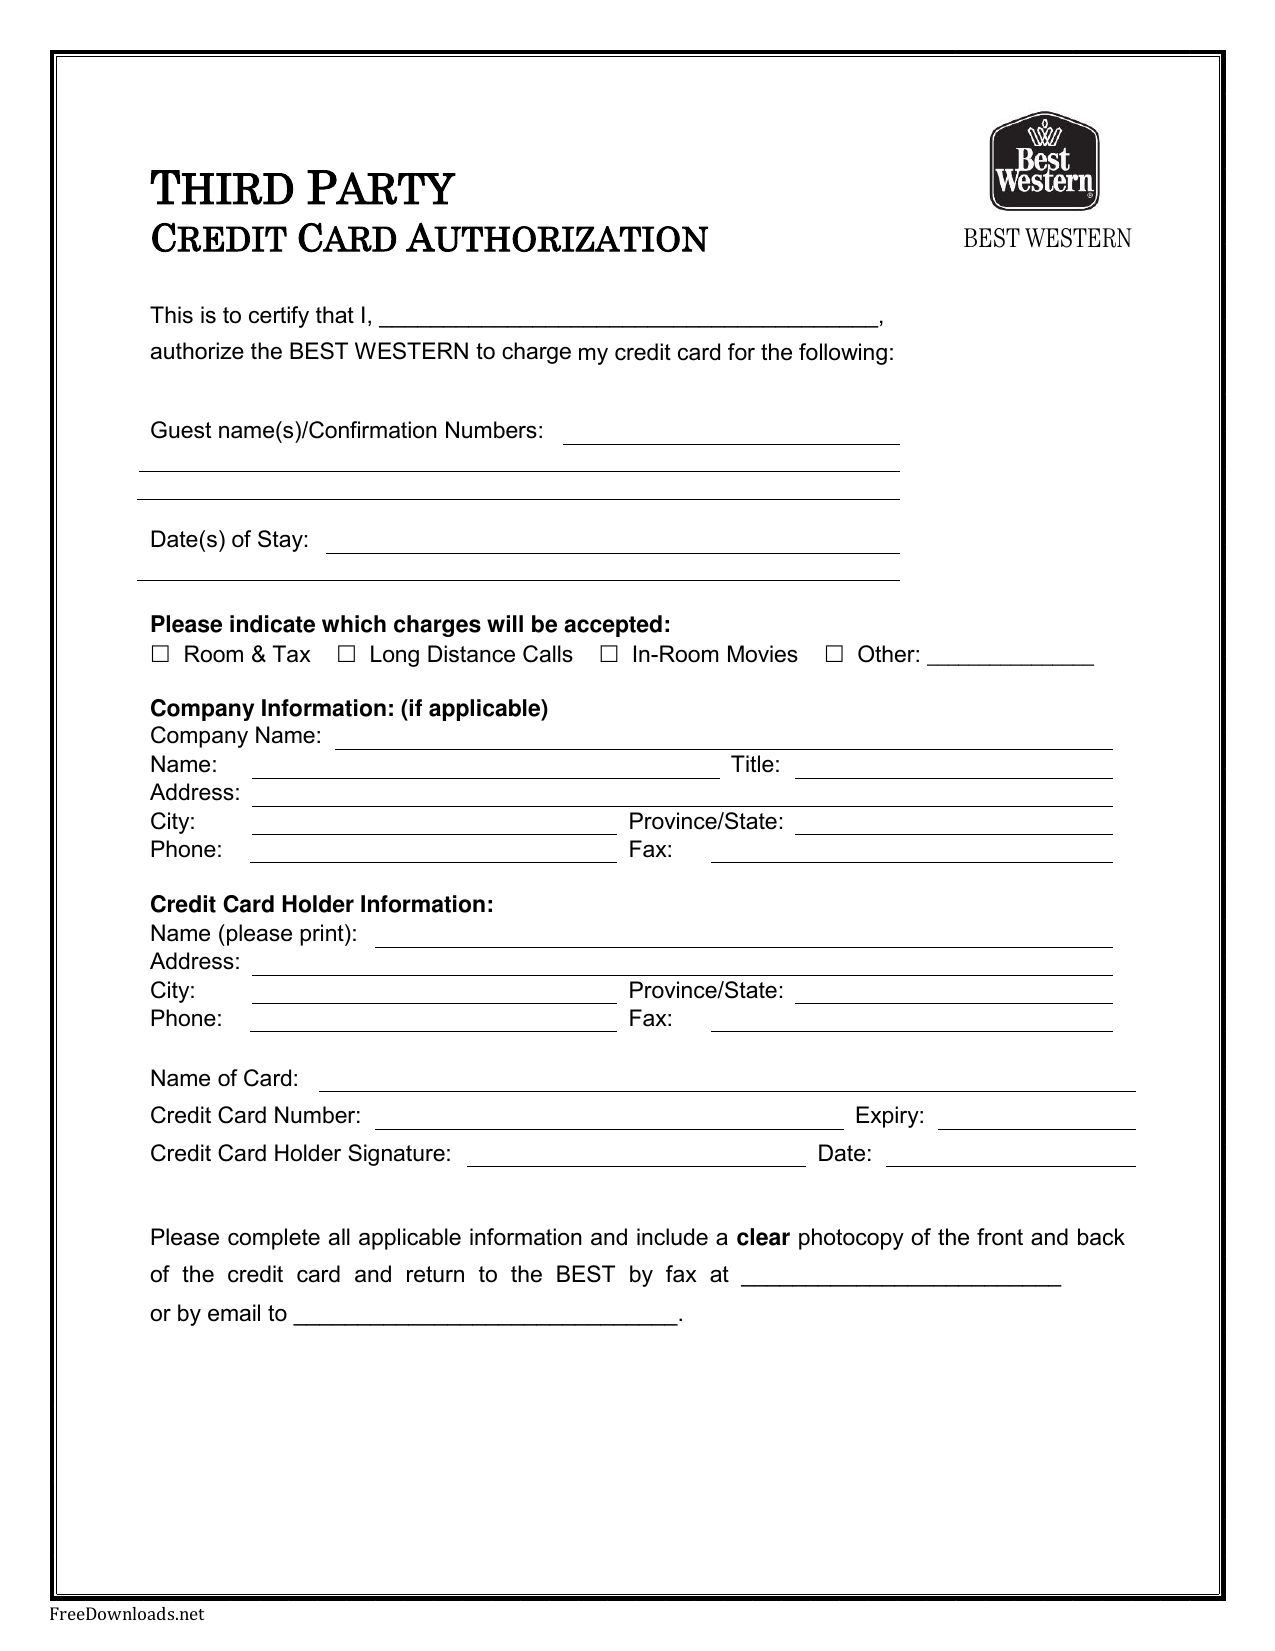 Medsolutions Prior Authorization Form Apply For Credit Card With Regard To Credit Card Authorisation Hotel Credit Cards Credit Card Charges Credit Card Images